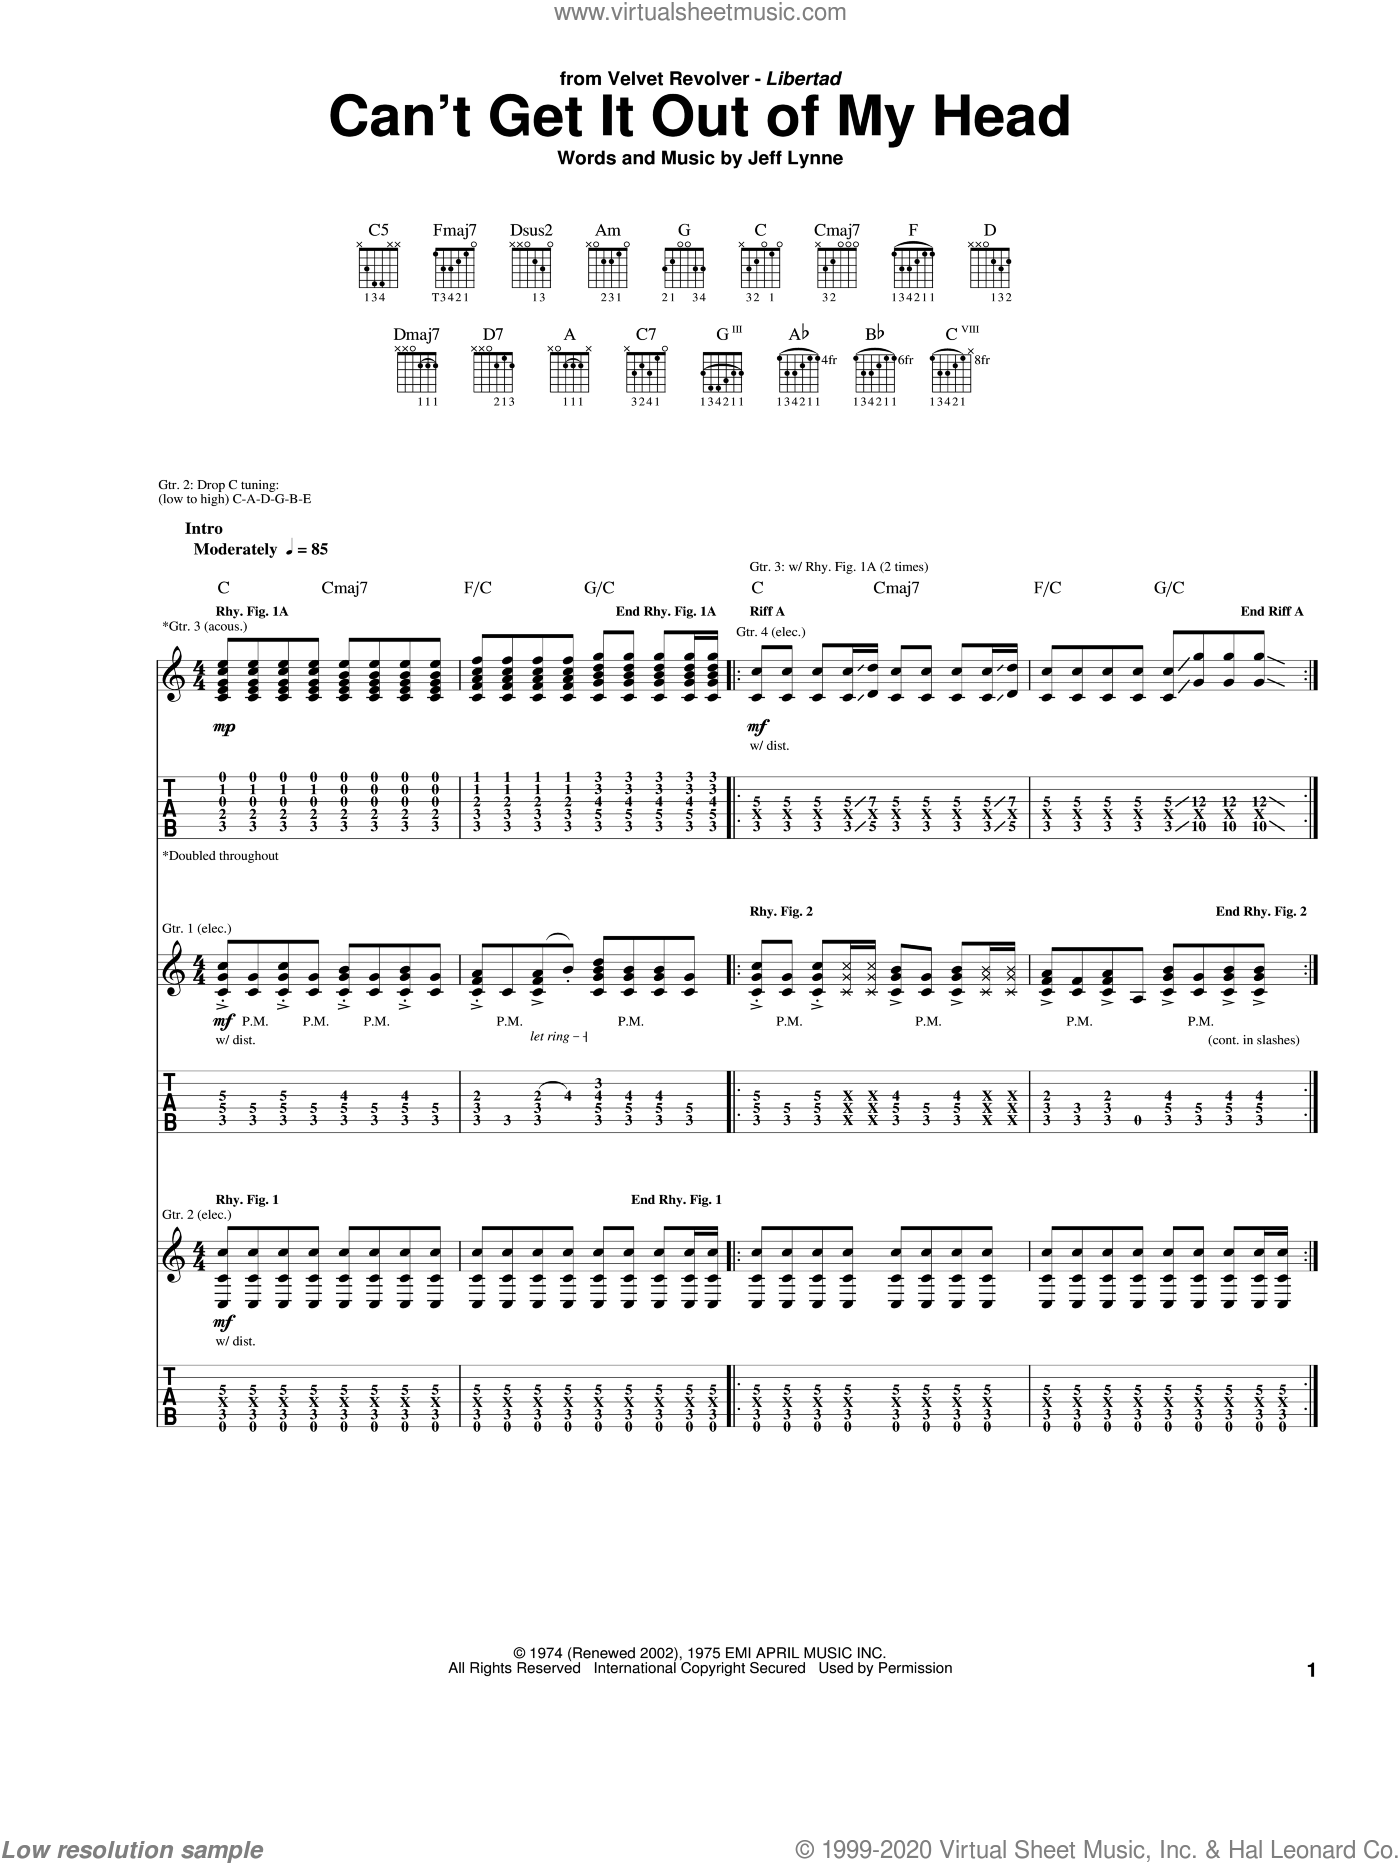 Can't Get It Out Of My Head sheet music for guitar (tablature) by Jeff Lynne